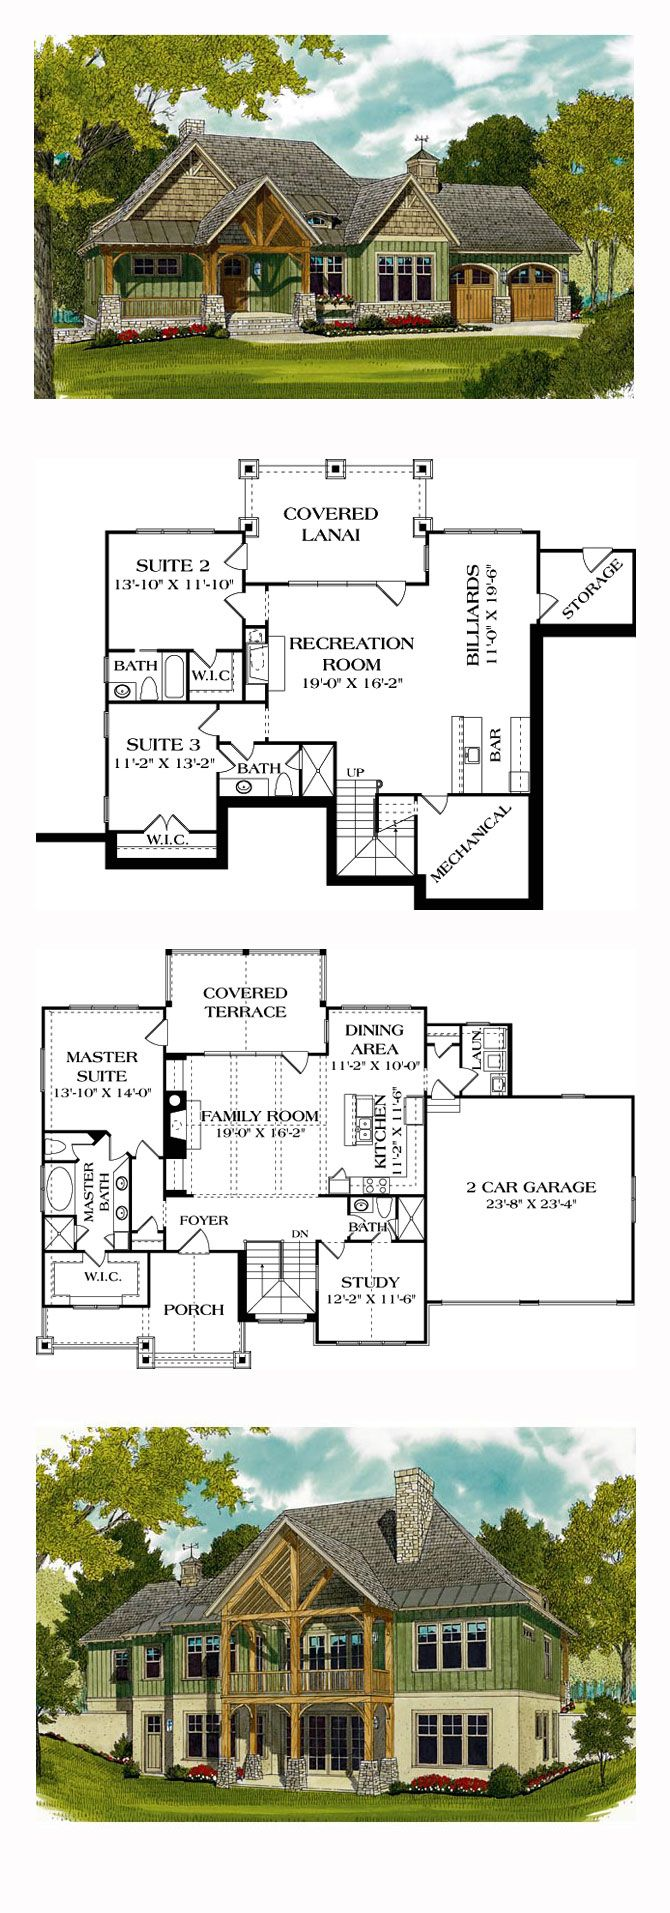 Hillside House Plan 97044 | Total Living Area: 2764 sq. ft., 3 bedrooms and 4 bathrooms. #hillsidehouse